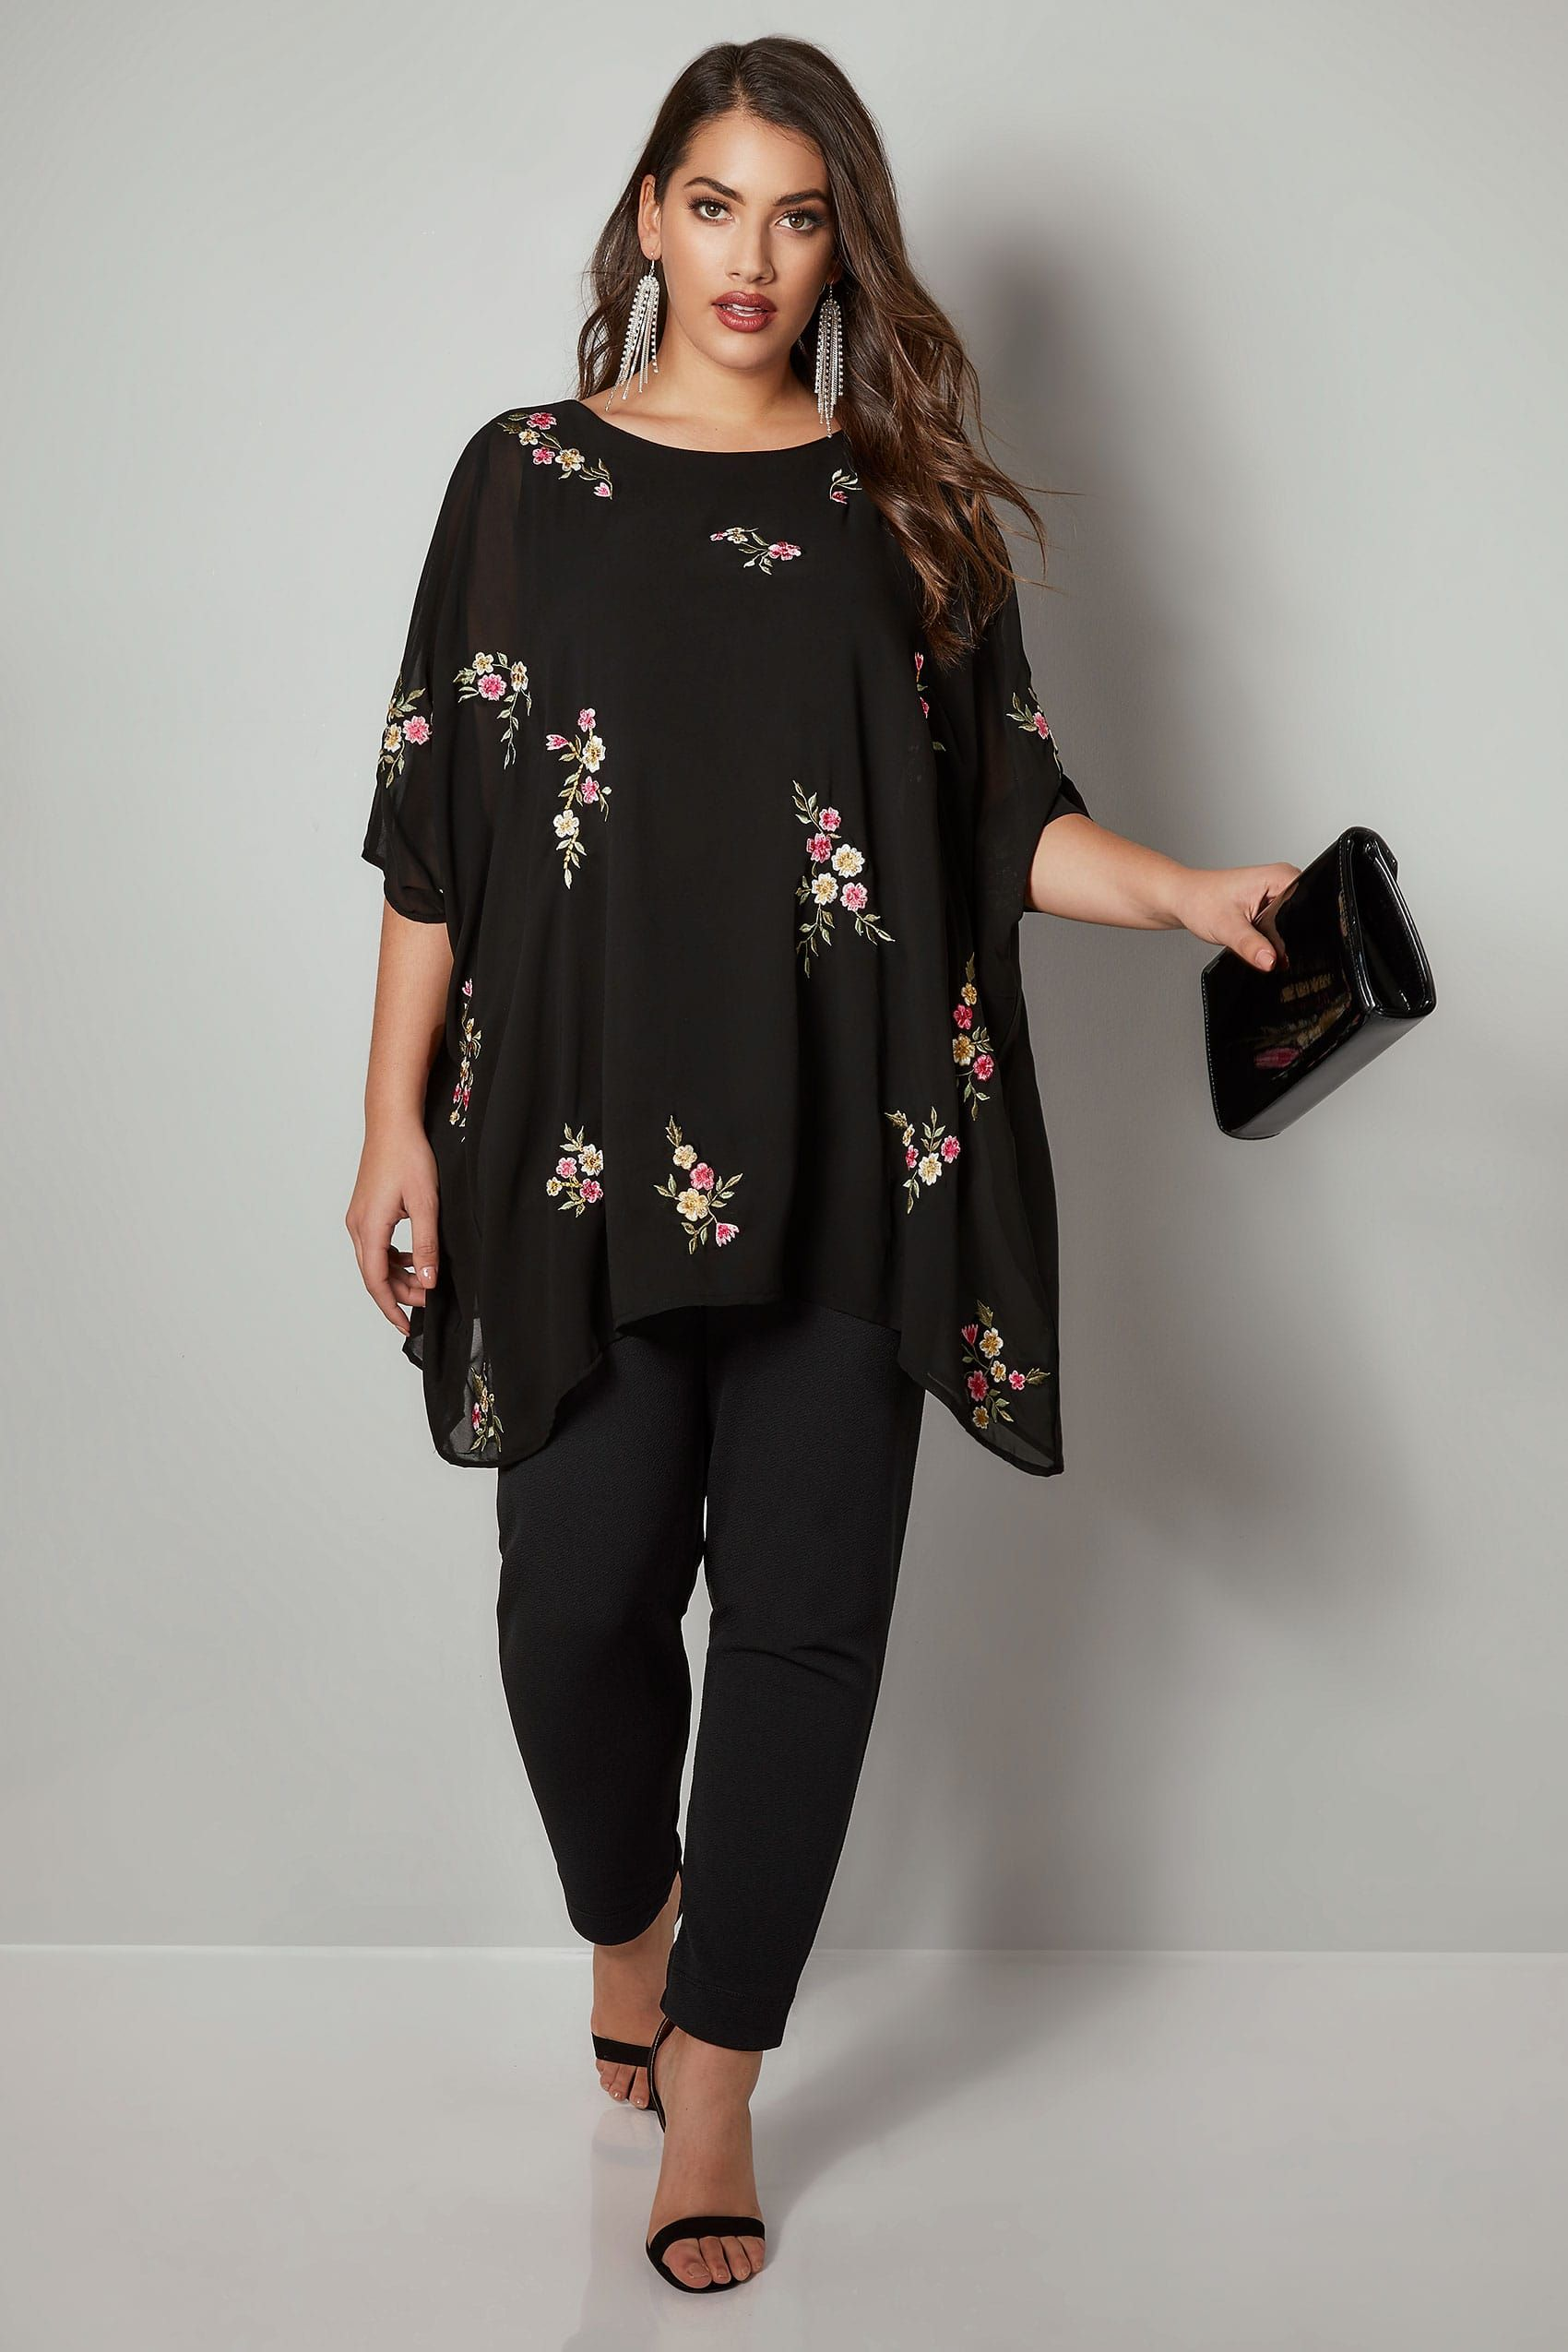 3aa4c797f958c4 YOURS LONDON Black Floral Embroidered Chiffon Cape Top in 2019 ...